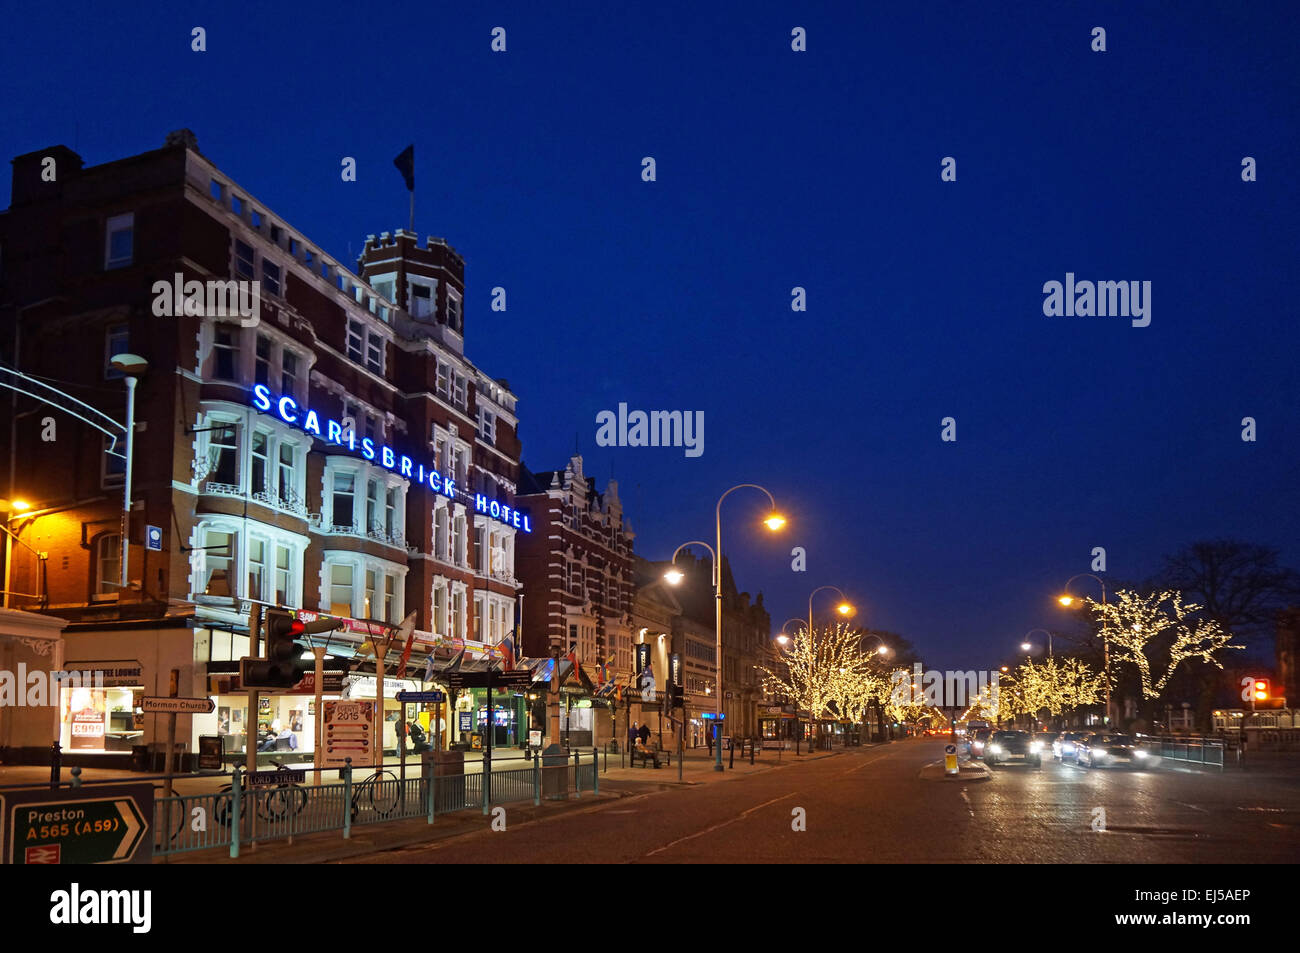 Scarisbrick Hotel, Southport, Lord Street Stock Photo